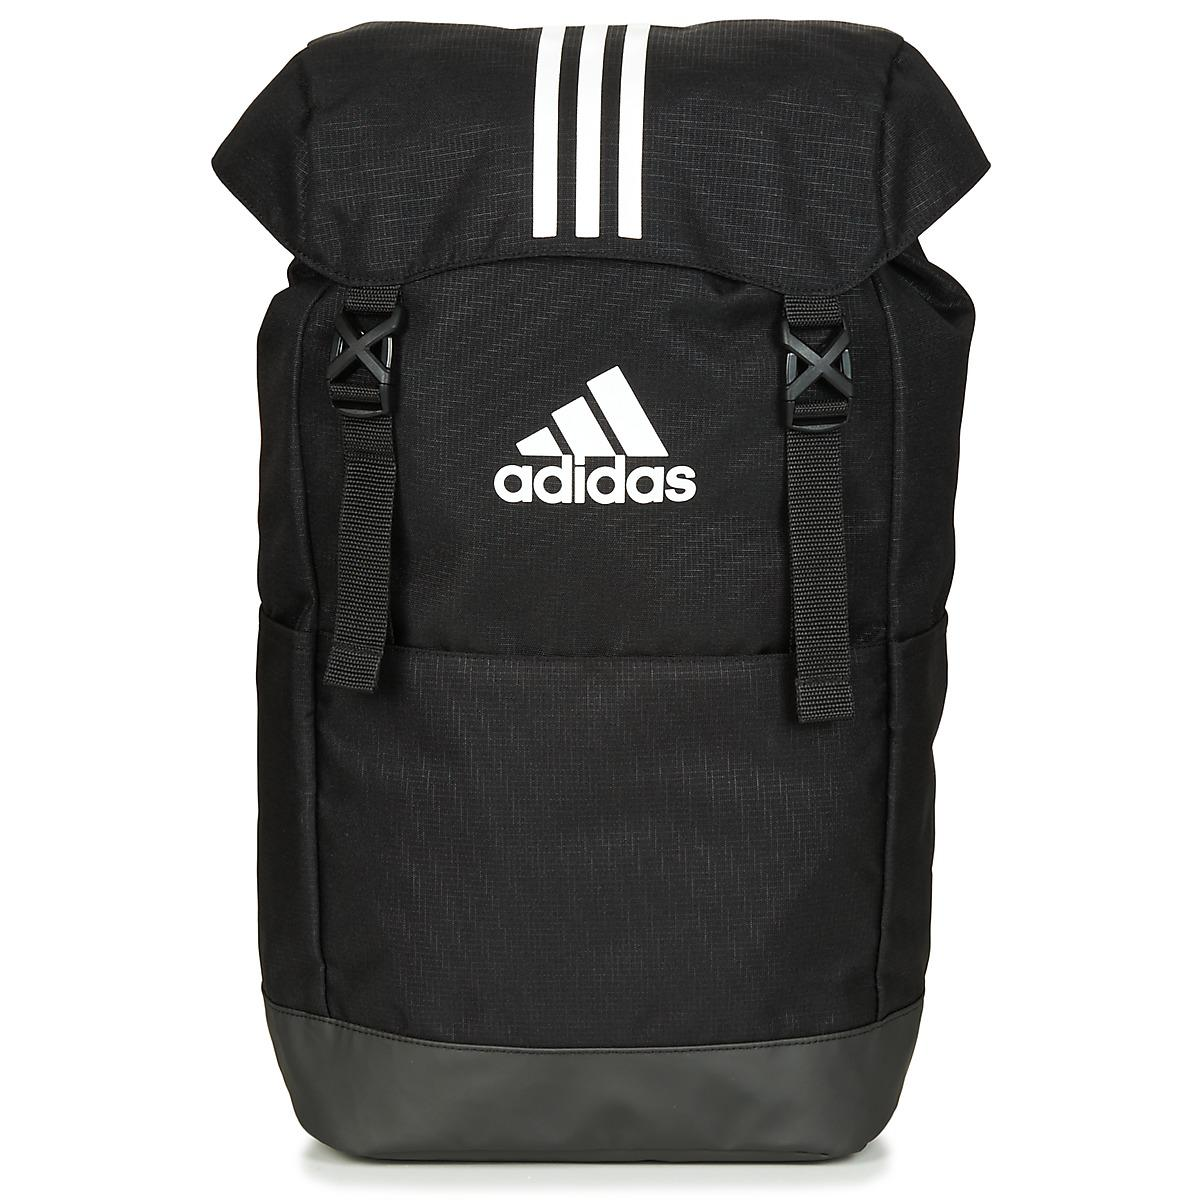 adidas 3s Bp Backpack in Black for Men - Lyst c3dacf2f7ec04